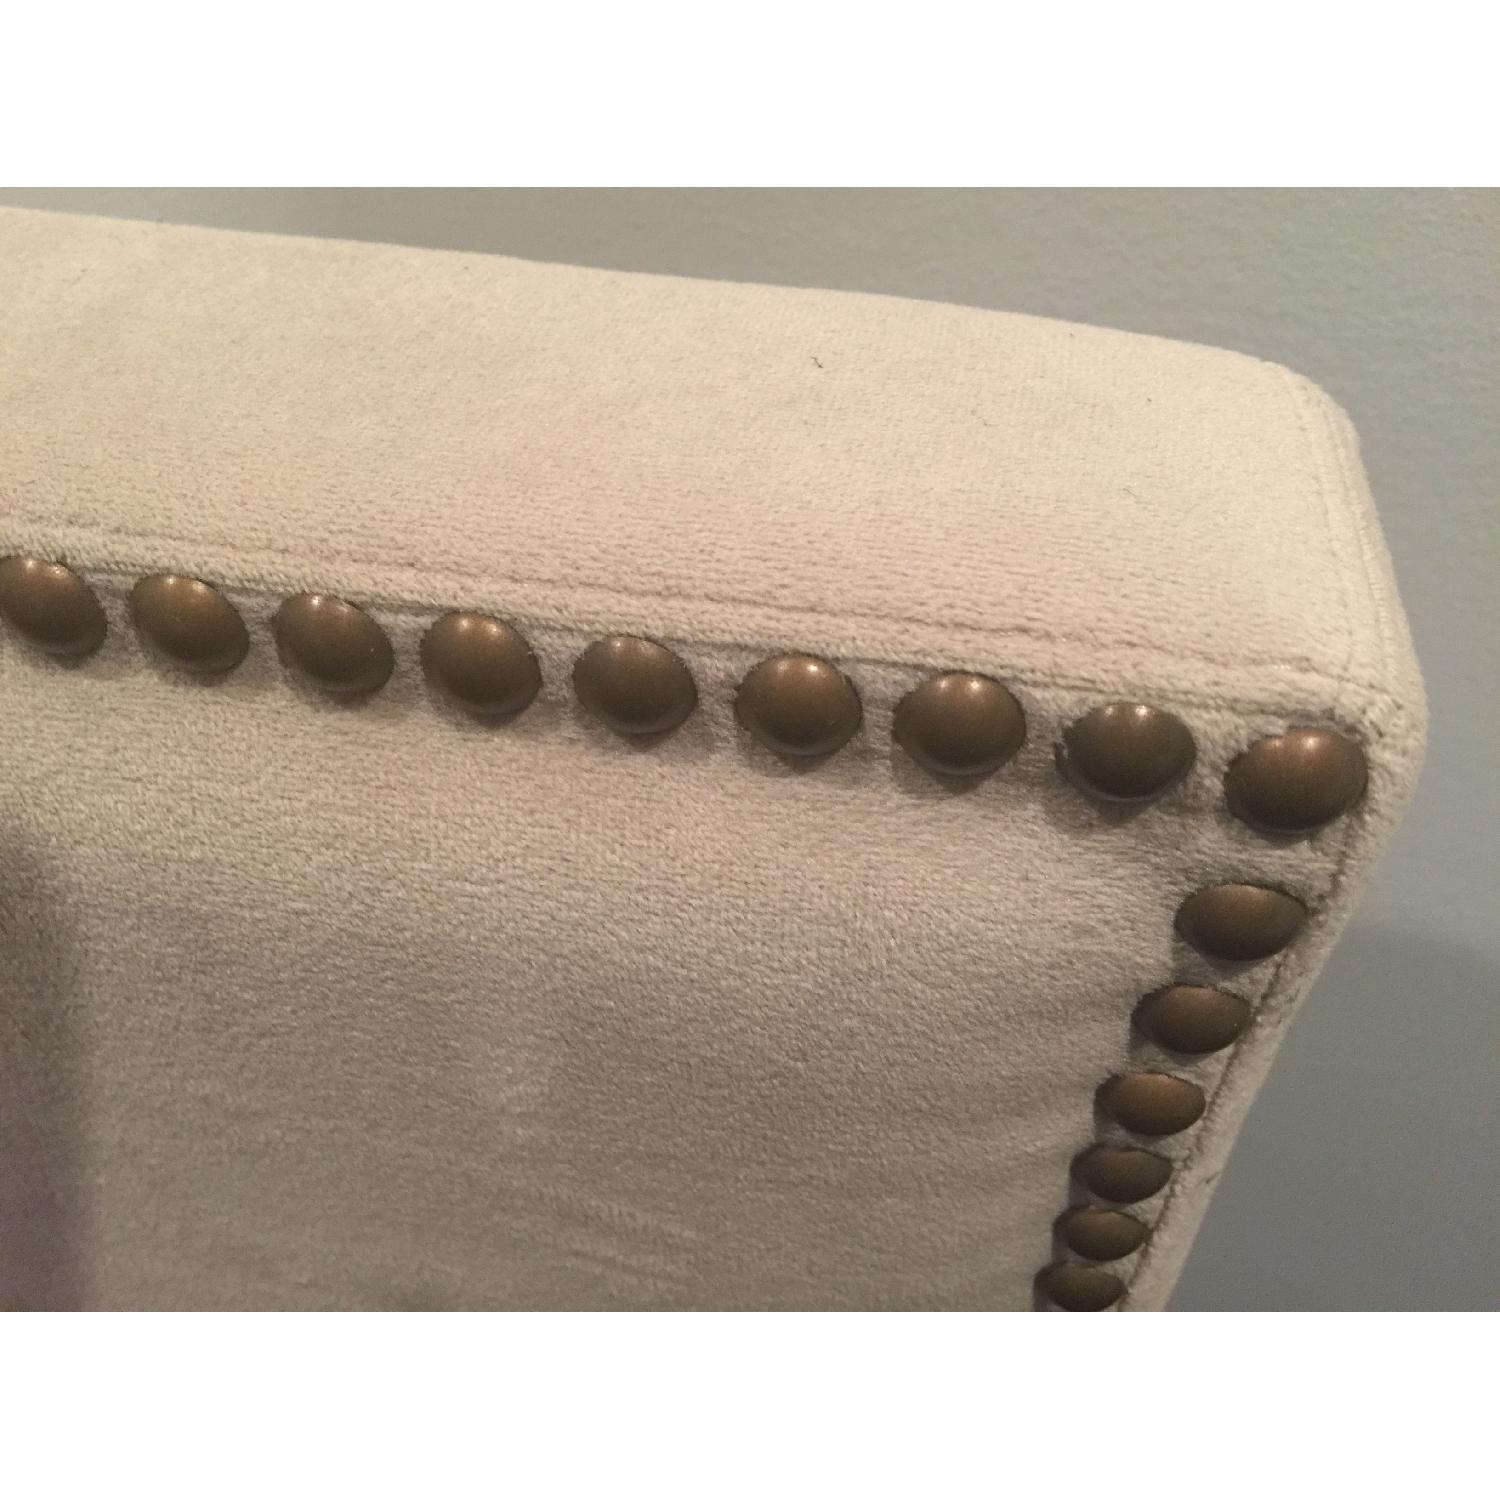 West Elm Full Size Nailhead Upholstered Headboard - image-3